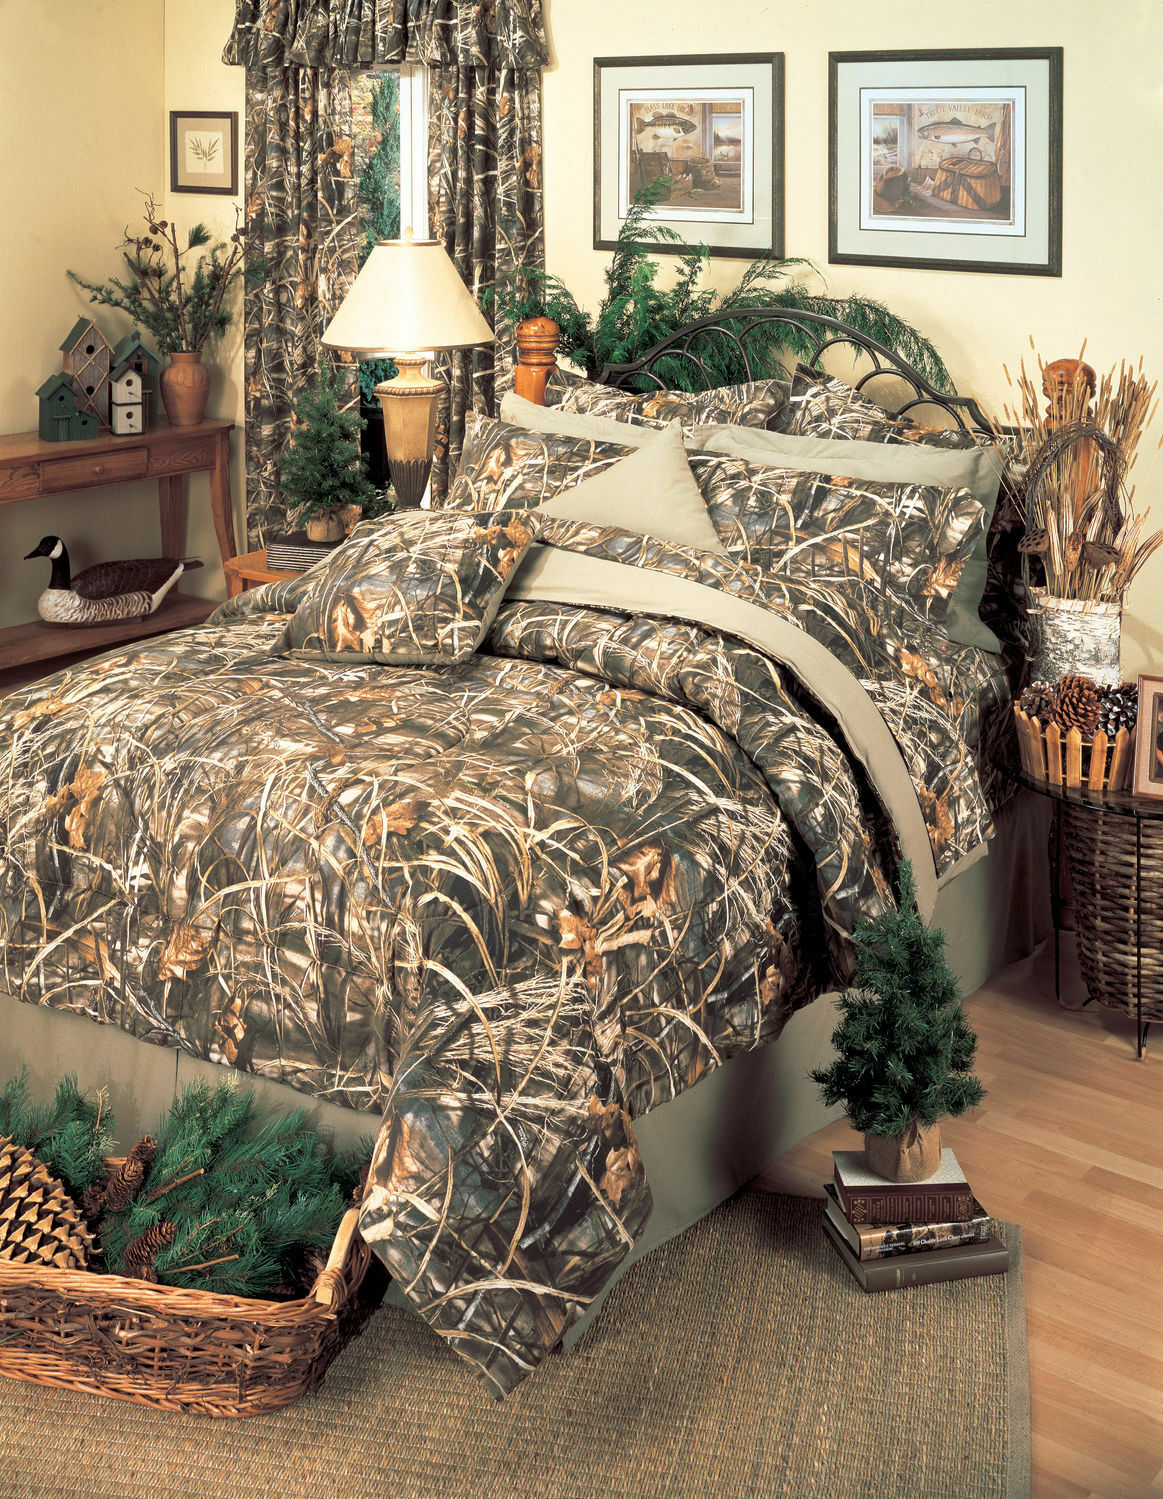 Realtree Max-4 Camo Comforter Set, Camouflage Bedding